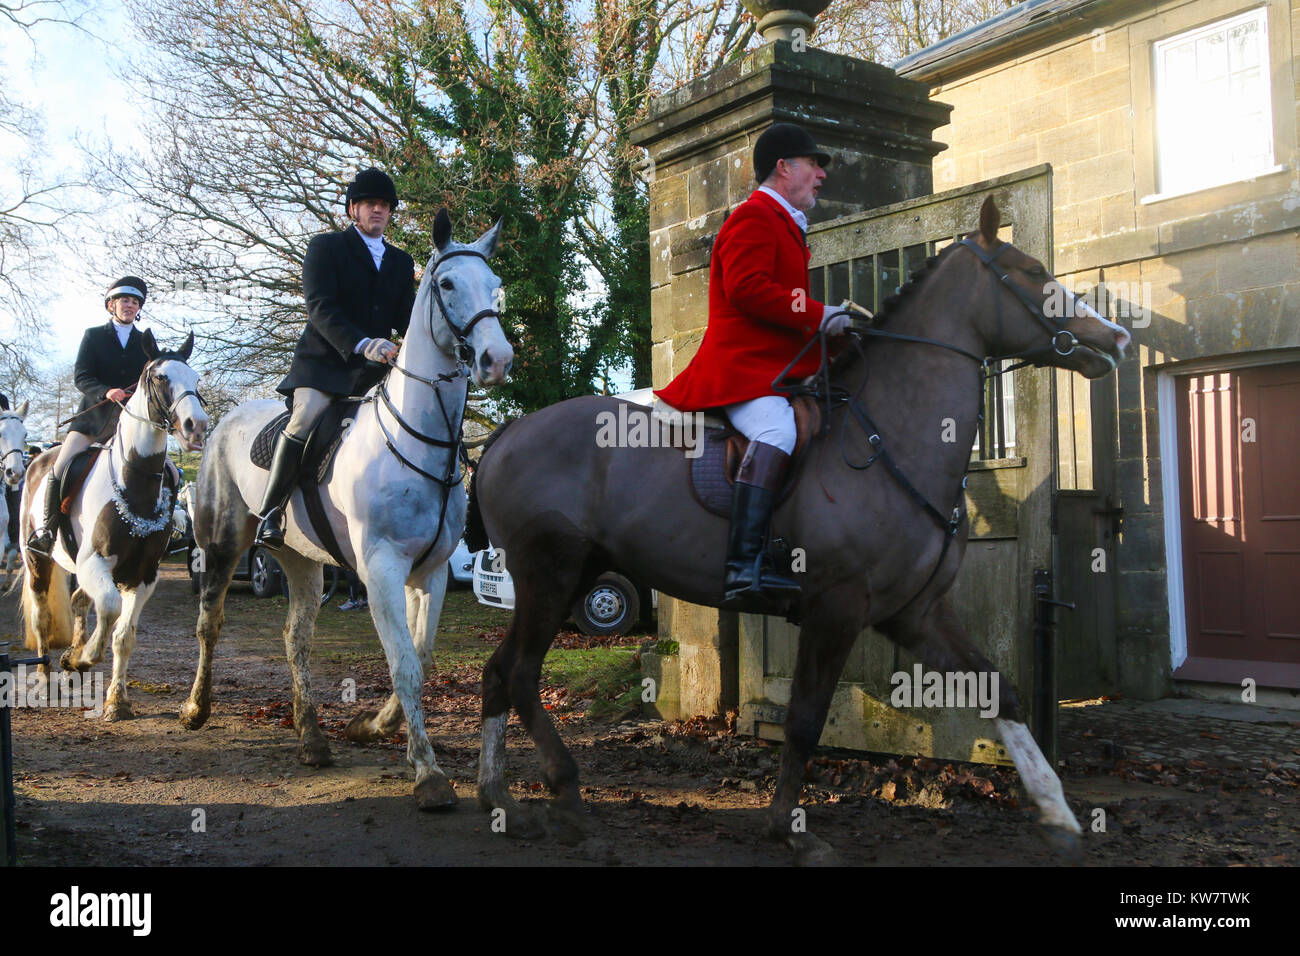 Boxing day legal drag hunt with hounds in Petworth, West Sussex (not a fox hunt) - Stock Image